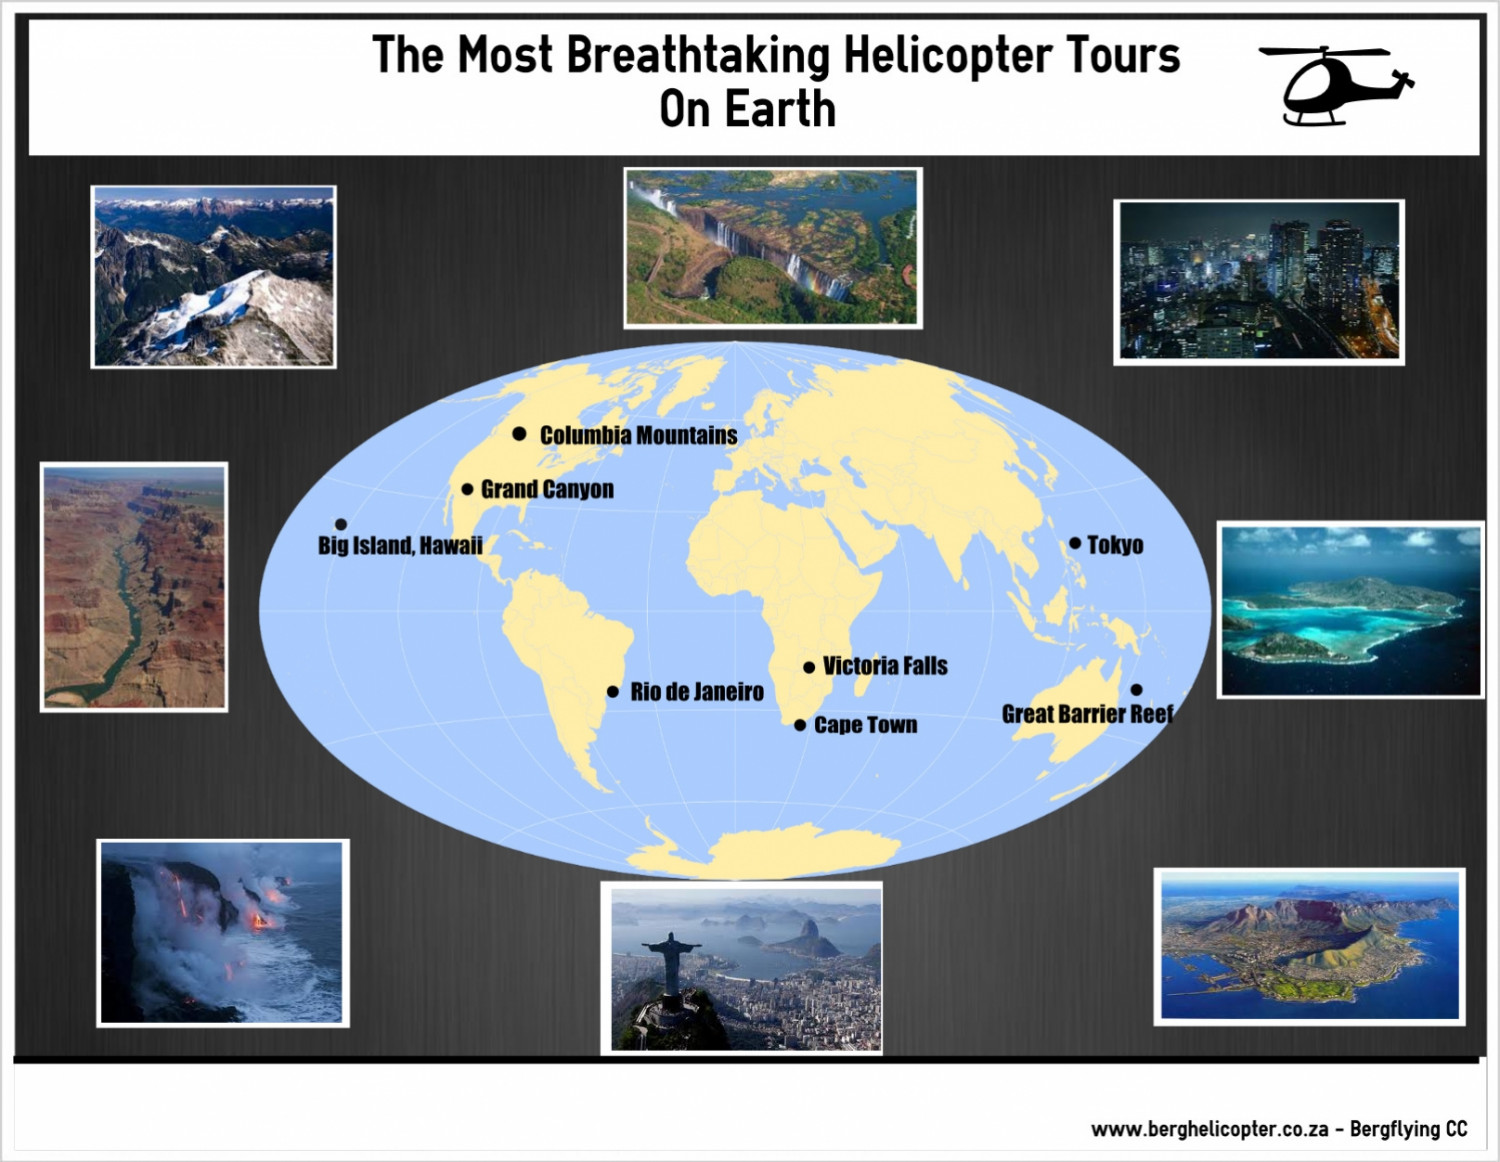 Bets helicopter tours Infographic